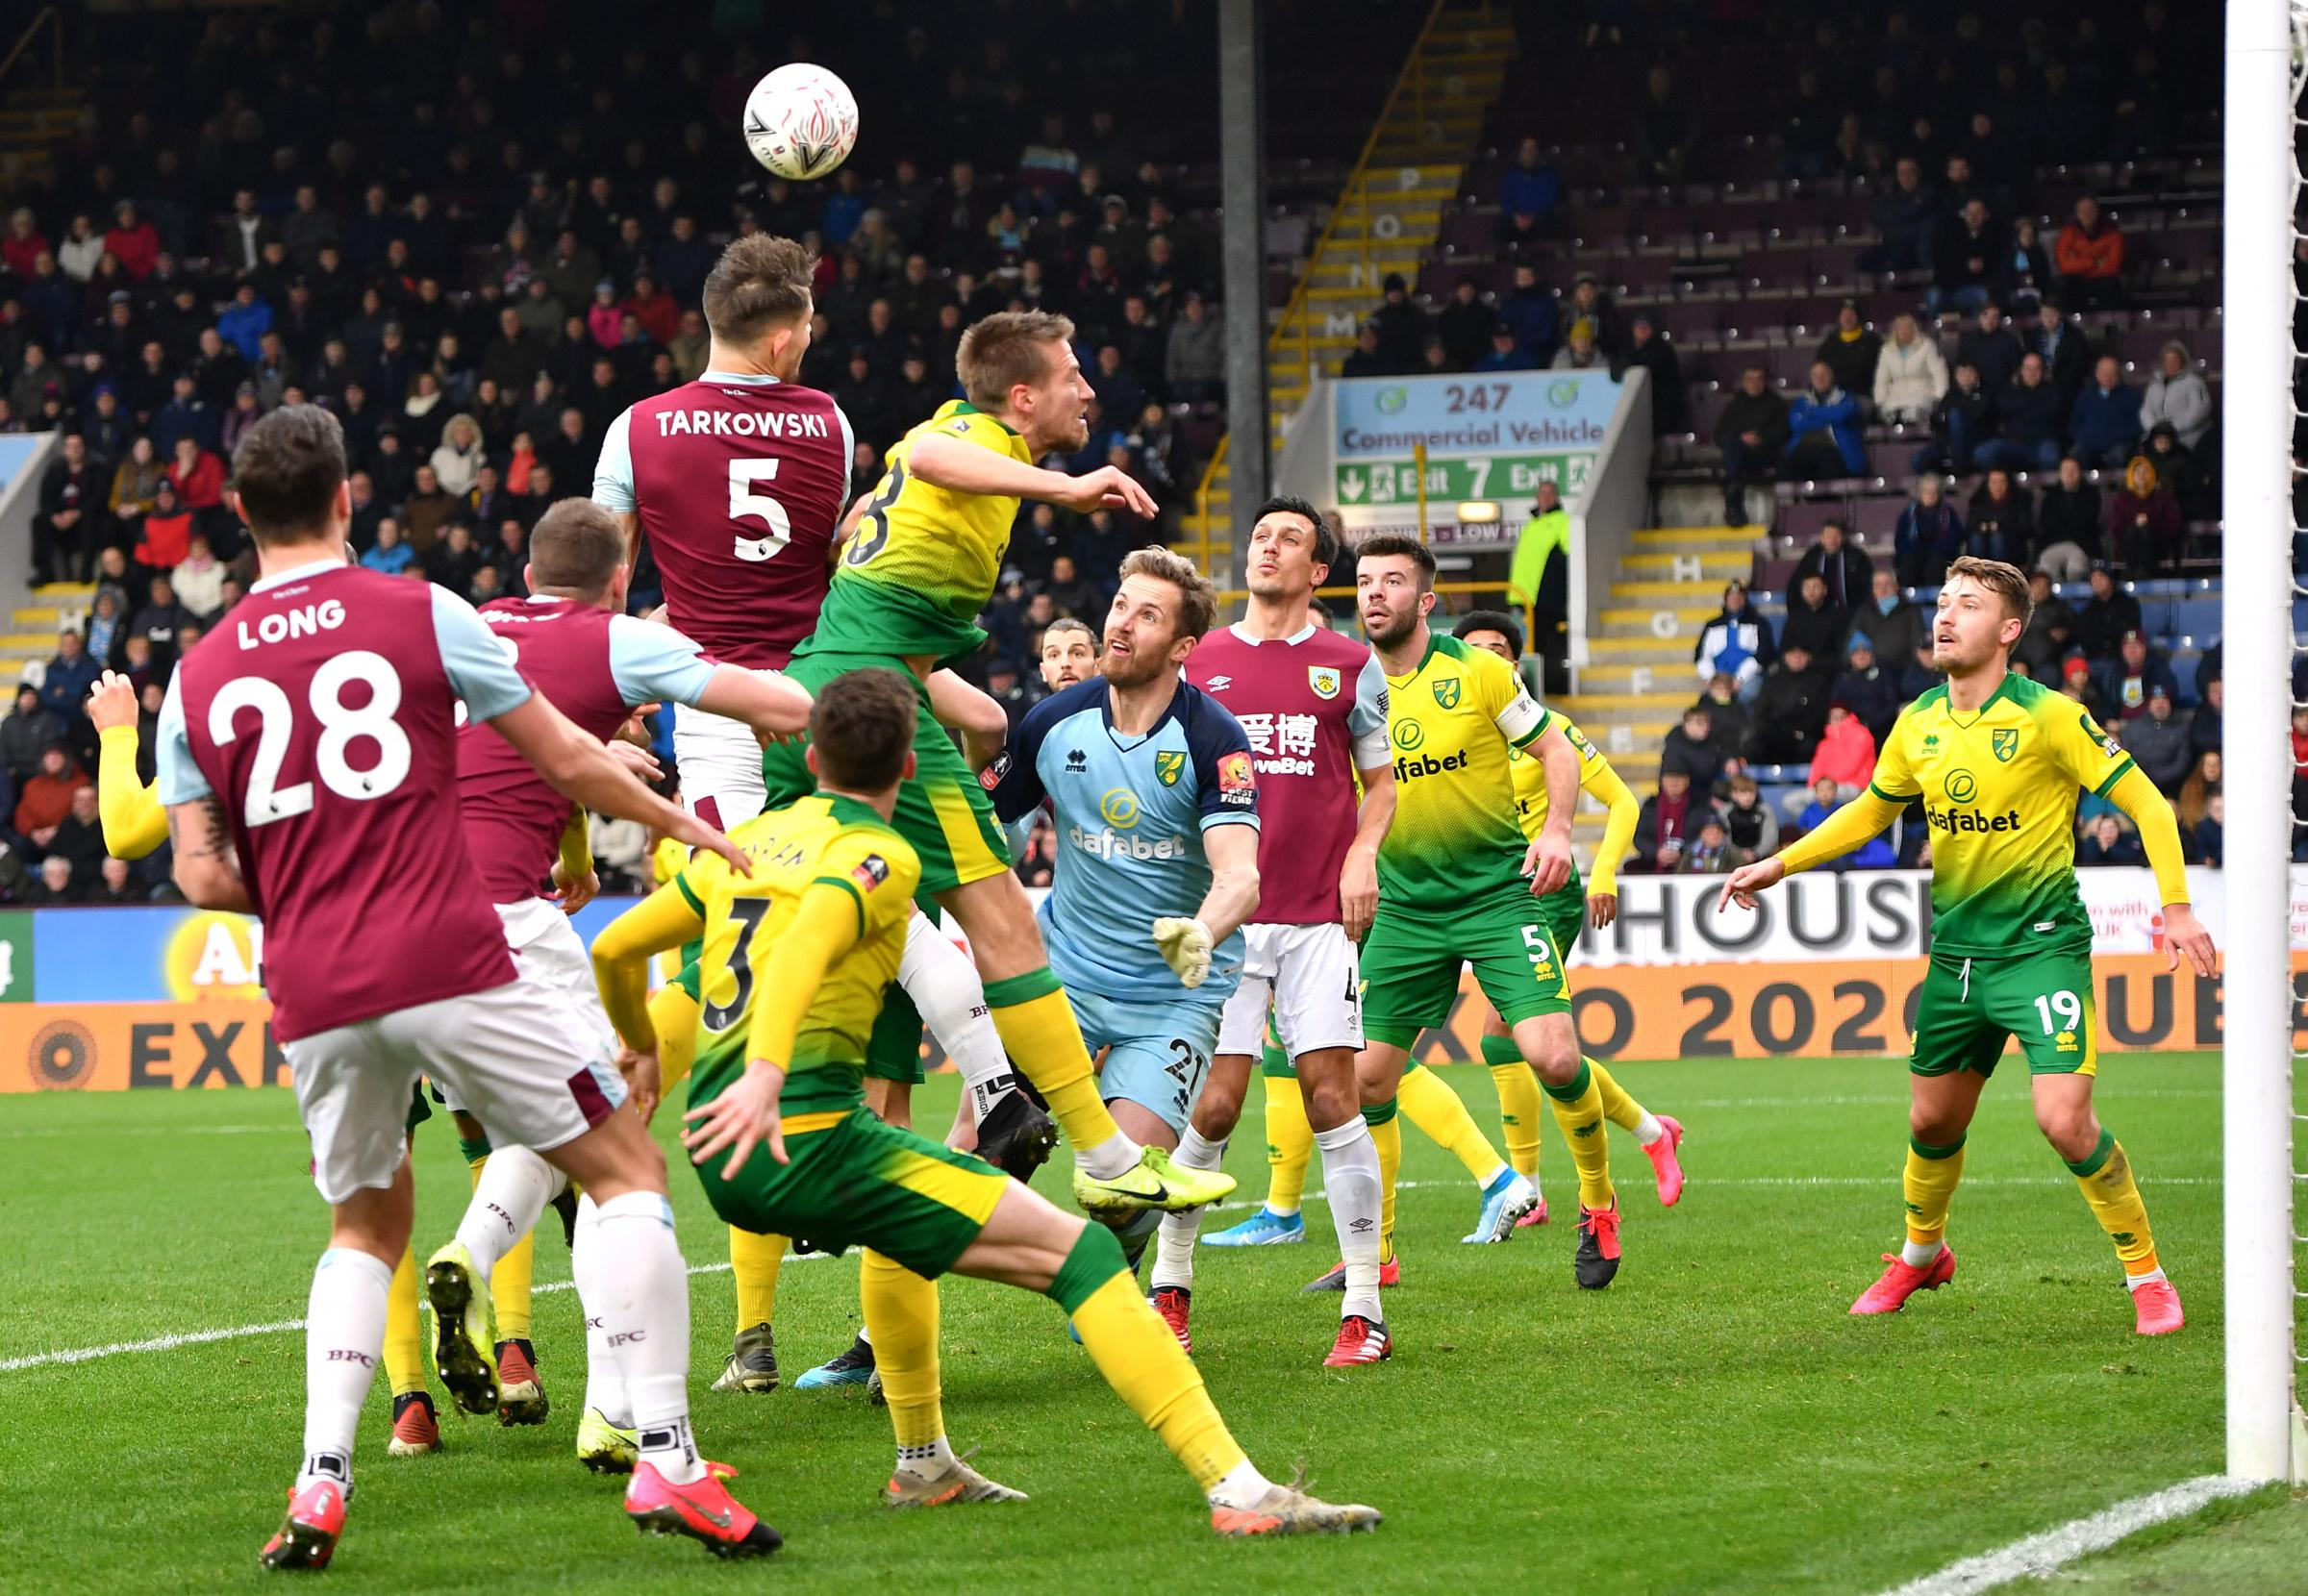 Burnley 0-2 Norwich live FA Cup updates from Turf Moor